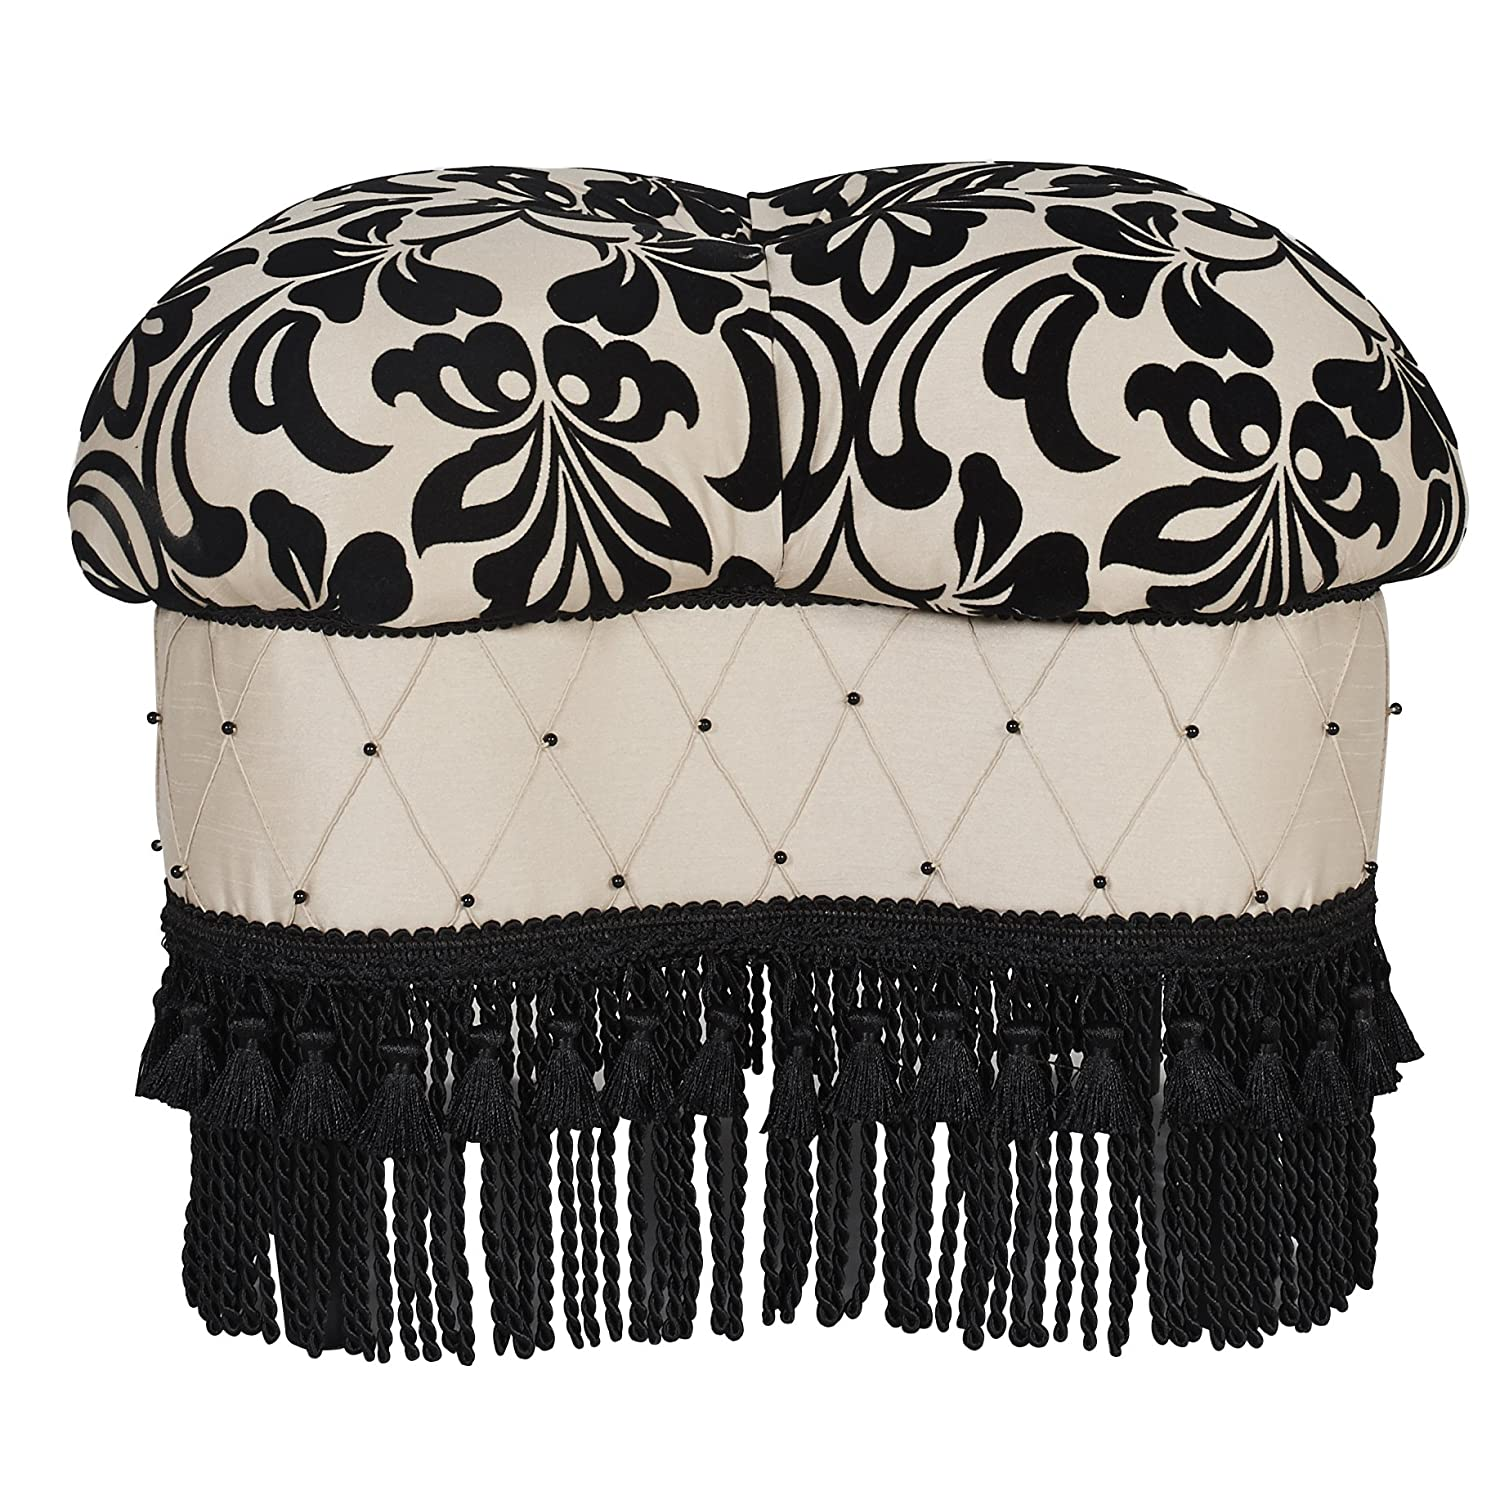 Jennifer Taylor Home Yorke Collection Gothic Design Hand Tufted, Sewn, Beading and Trim Tassels Round Luxury Ottoman, Floral Print Black White